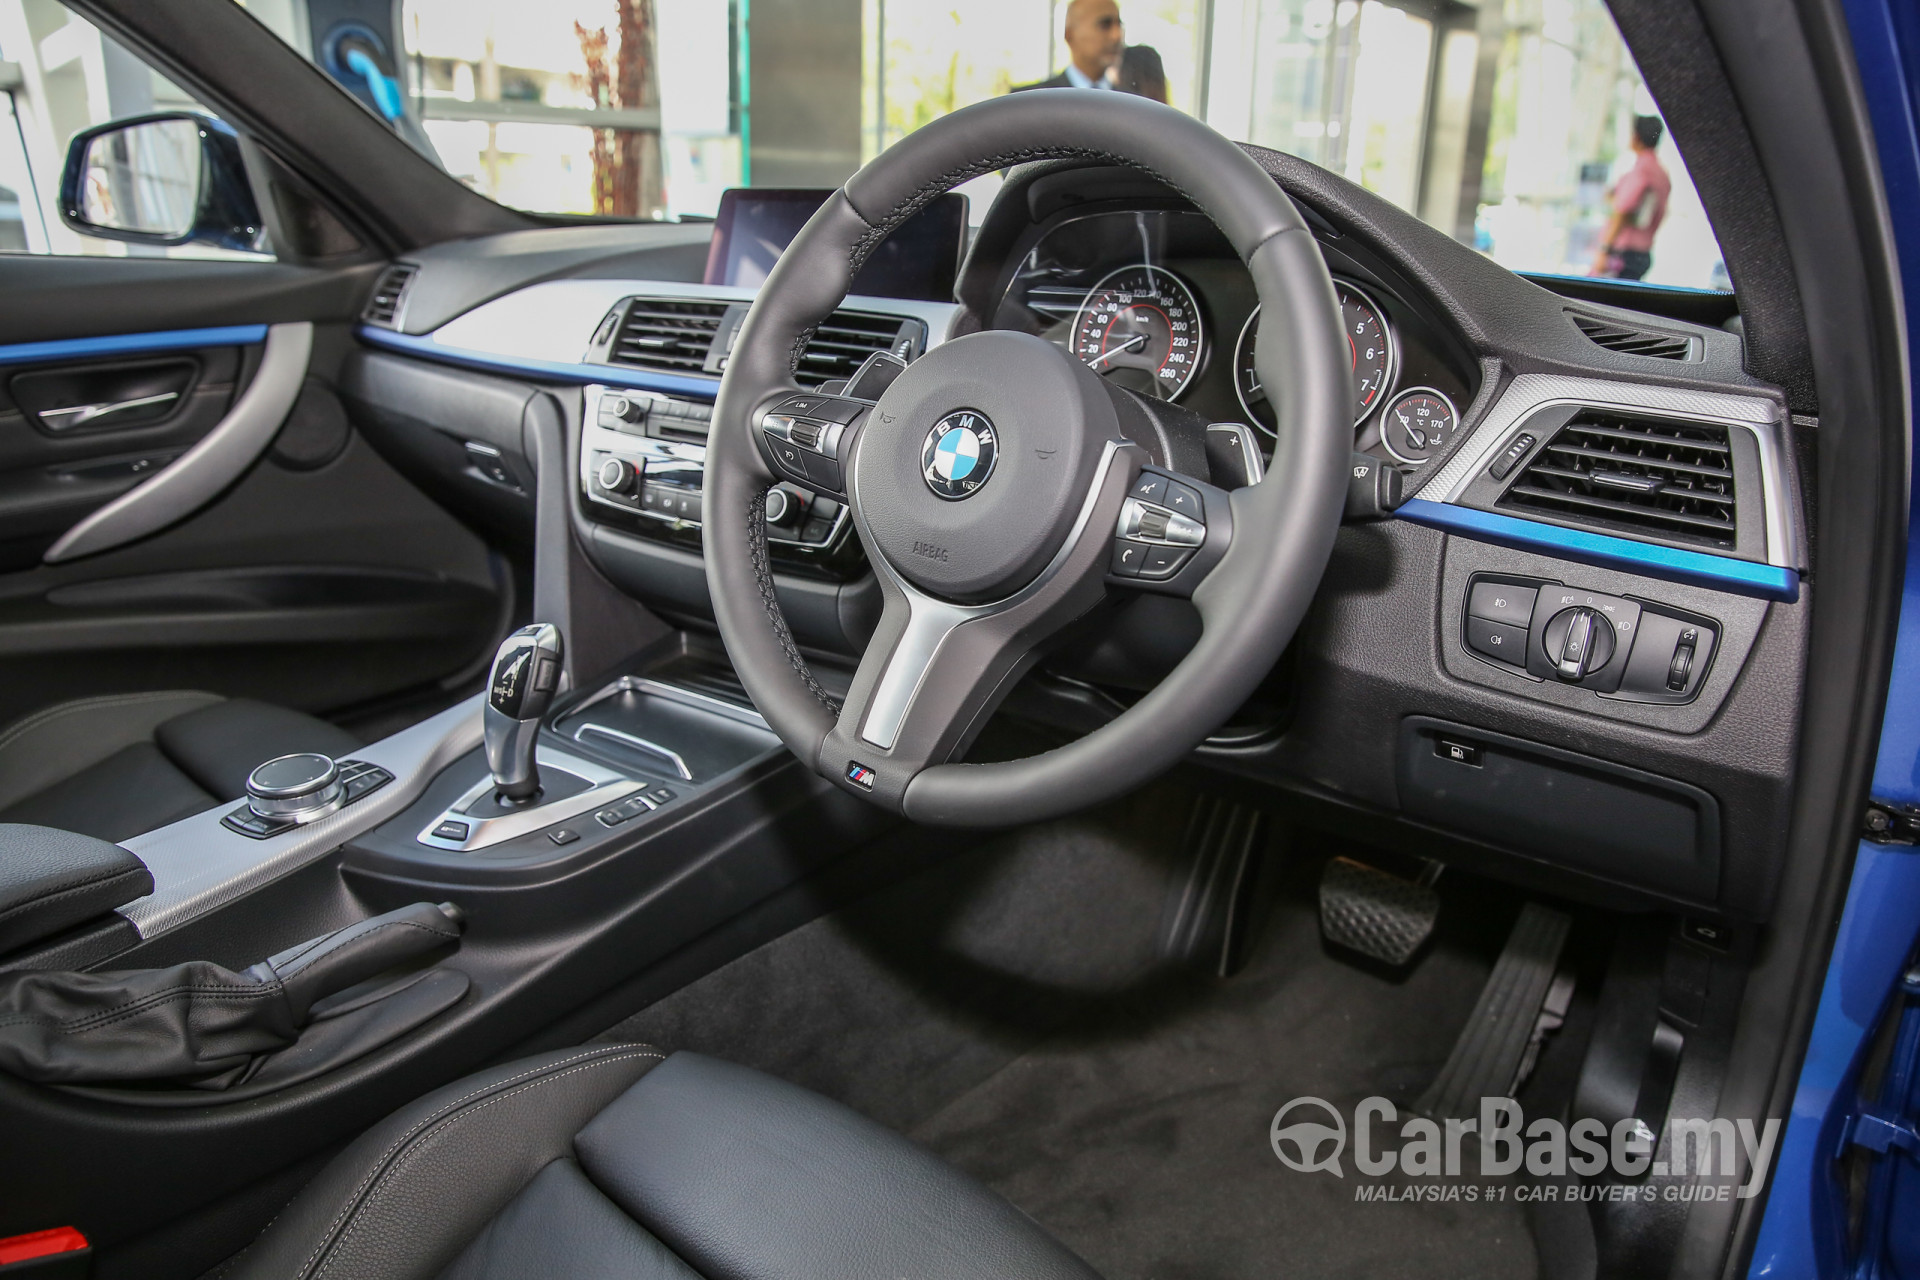 F30 Interieur Bmw 3 Series F30 Lci 2015 Interior Image 36369 In